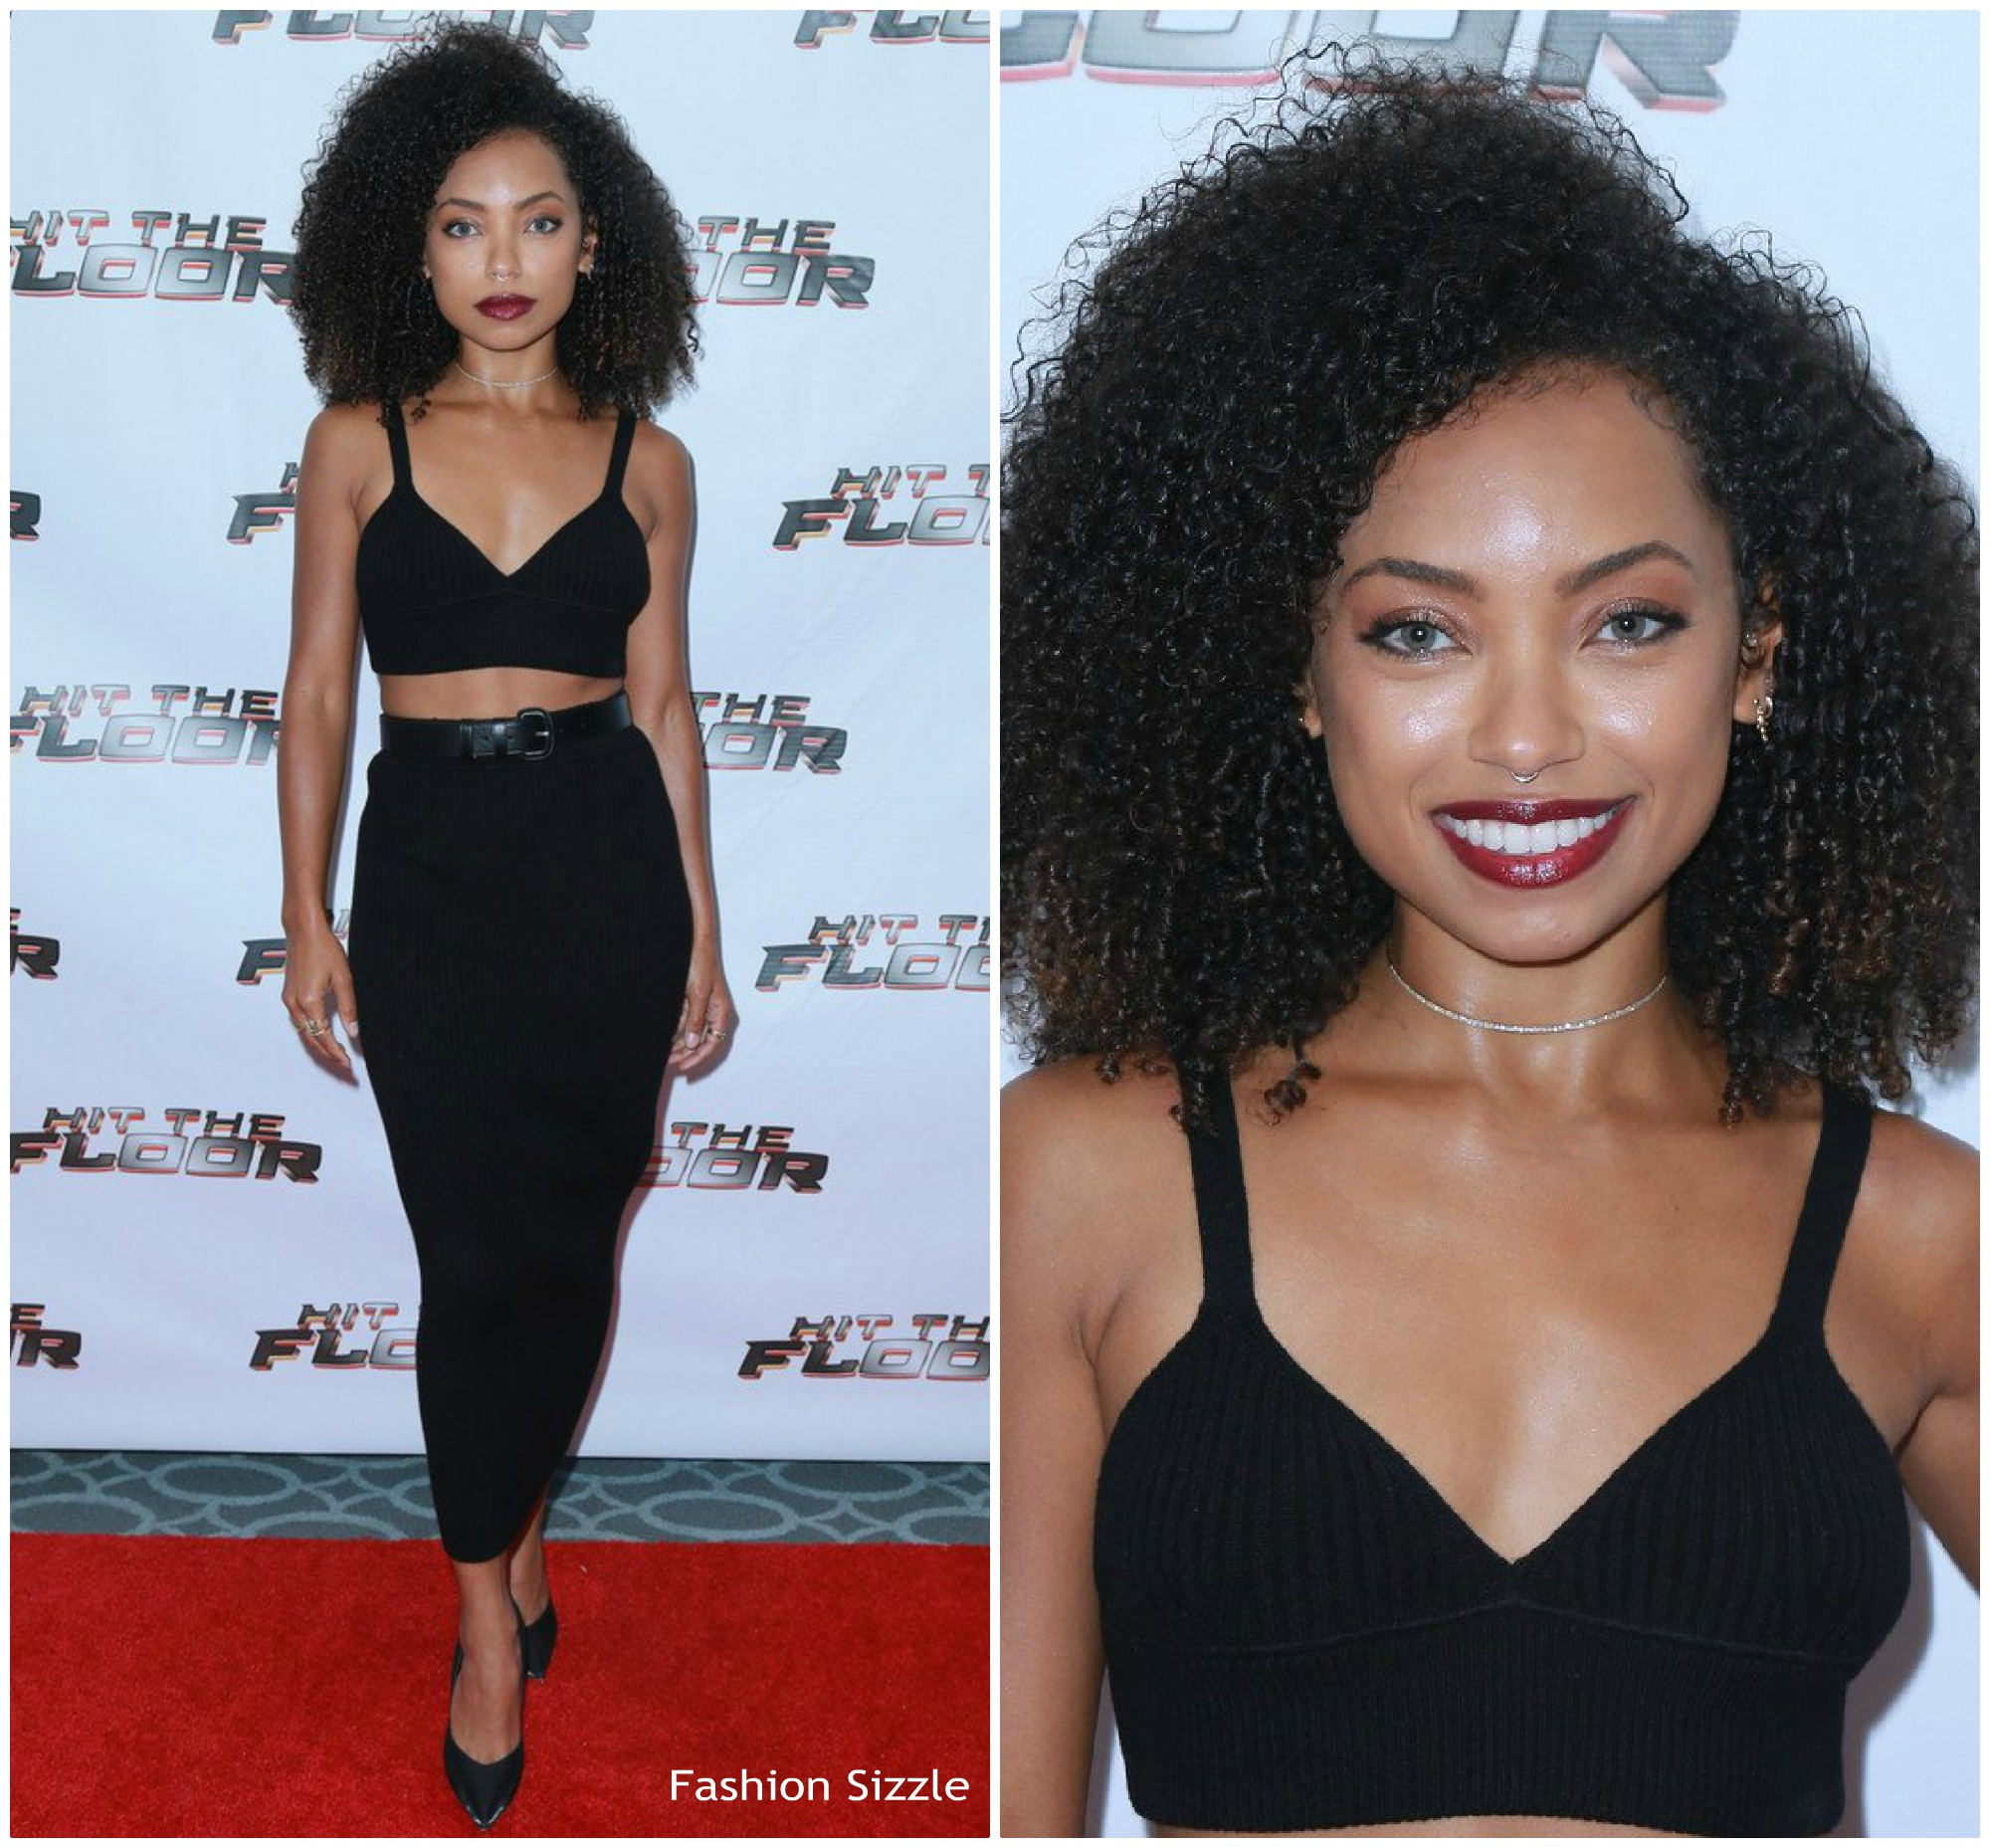 logan-browning-in-michael-kors-collection-hit-the-floor-season-4-la-premiere